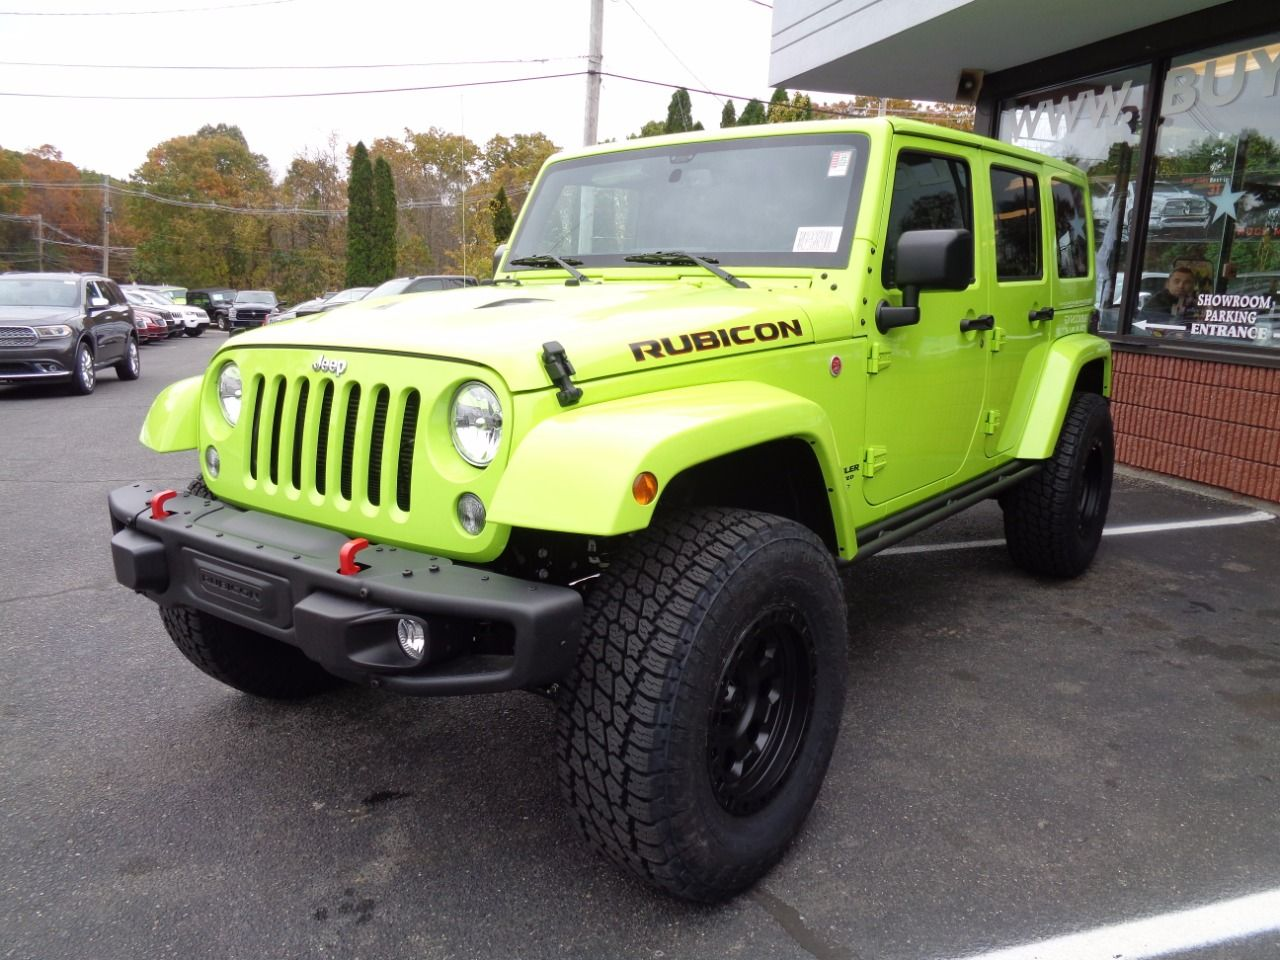 2016 jeep wrangler unlimited rubicon hard rock in hypergreen clearcoat for sale in boston ma